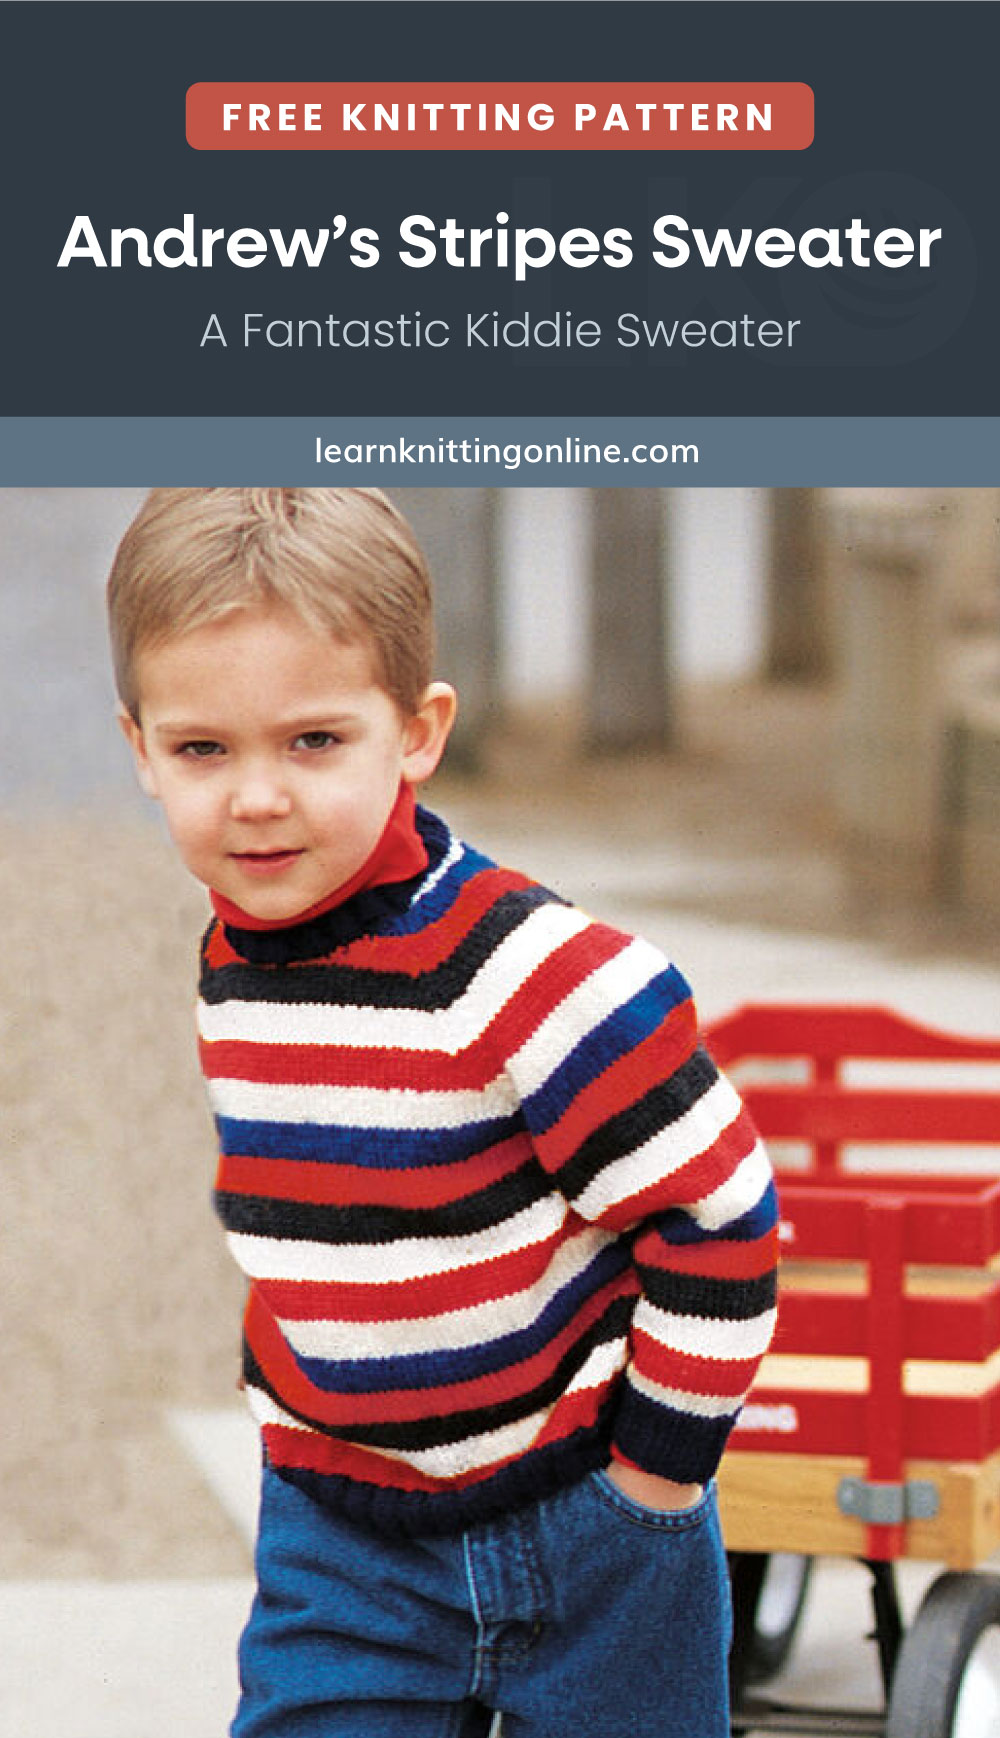 """Text area which says """"Free Knitting Pattern: Andrew's Stripes Sweater - A Fantastic Kiddie Sweater, learnknittingonline.com"""" followed by a little boy wearing a knitted sweater with stripes while pullling a wagon"""